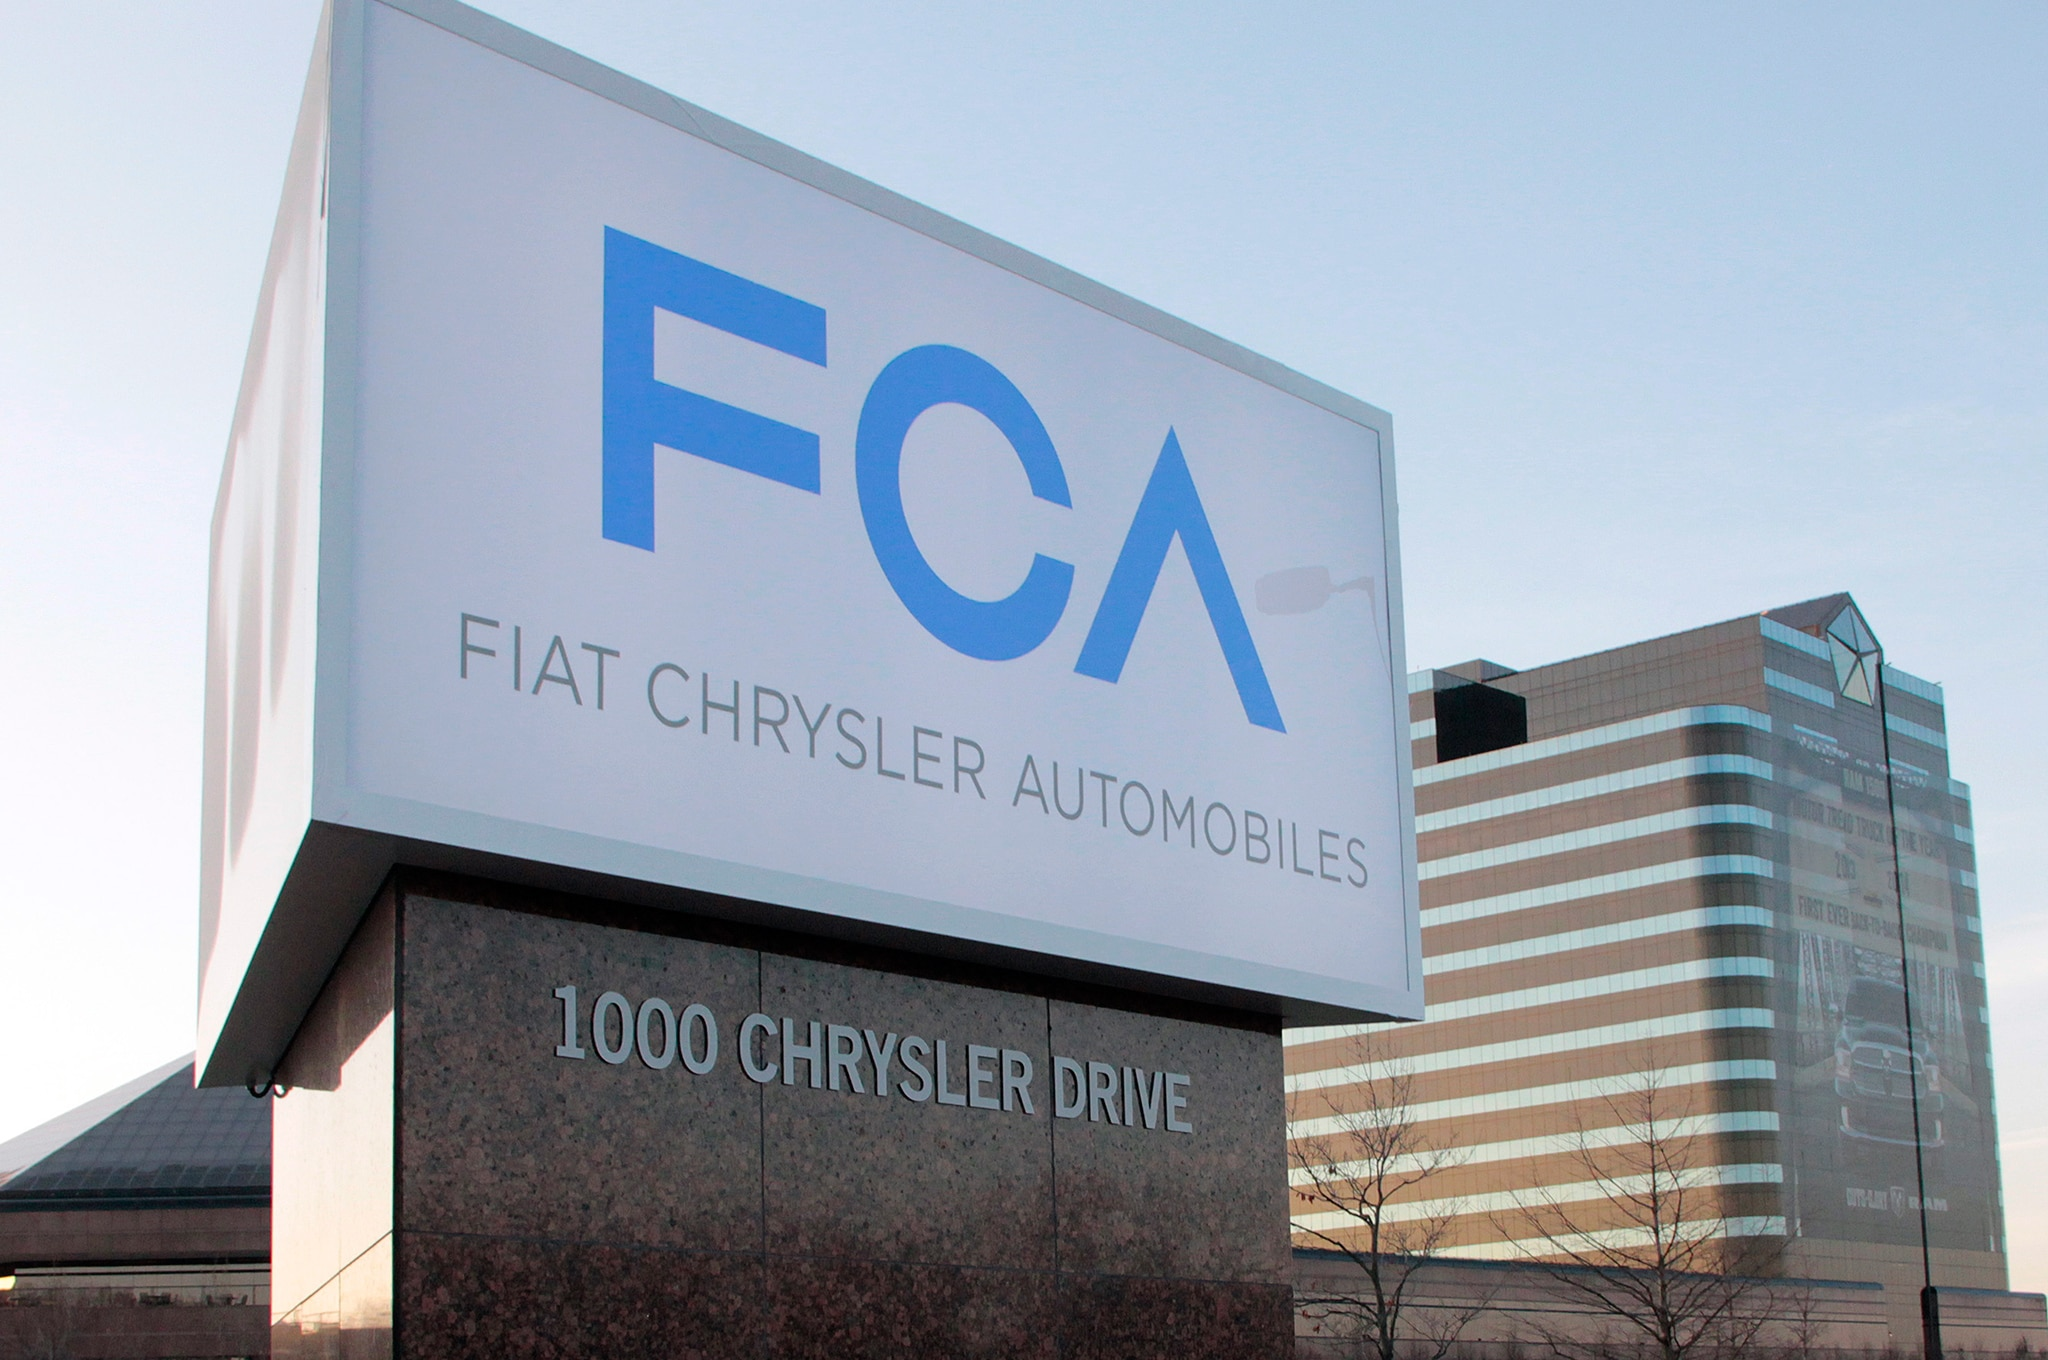 Fiat Chrysler Automobiles New Sign Complete1